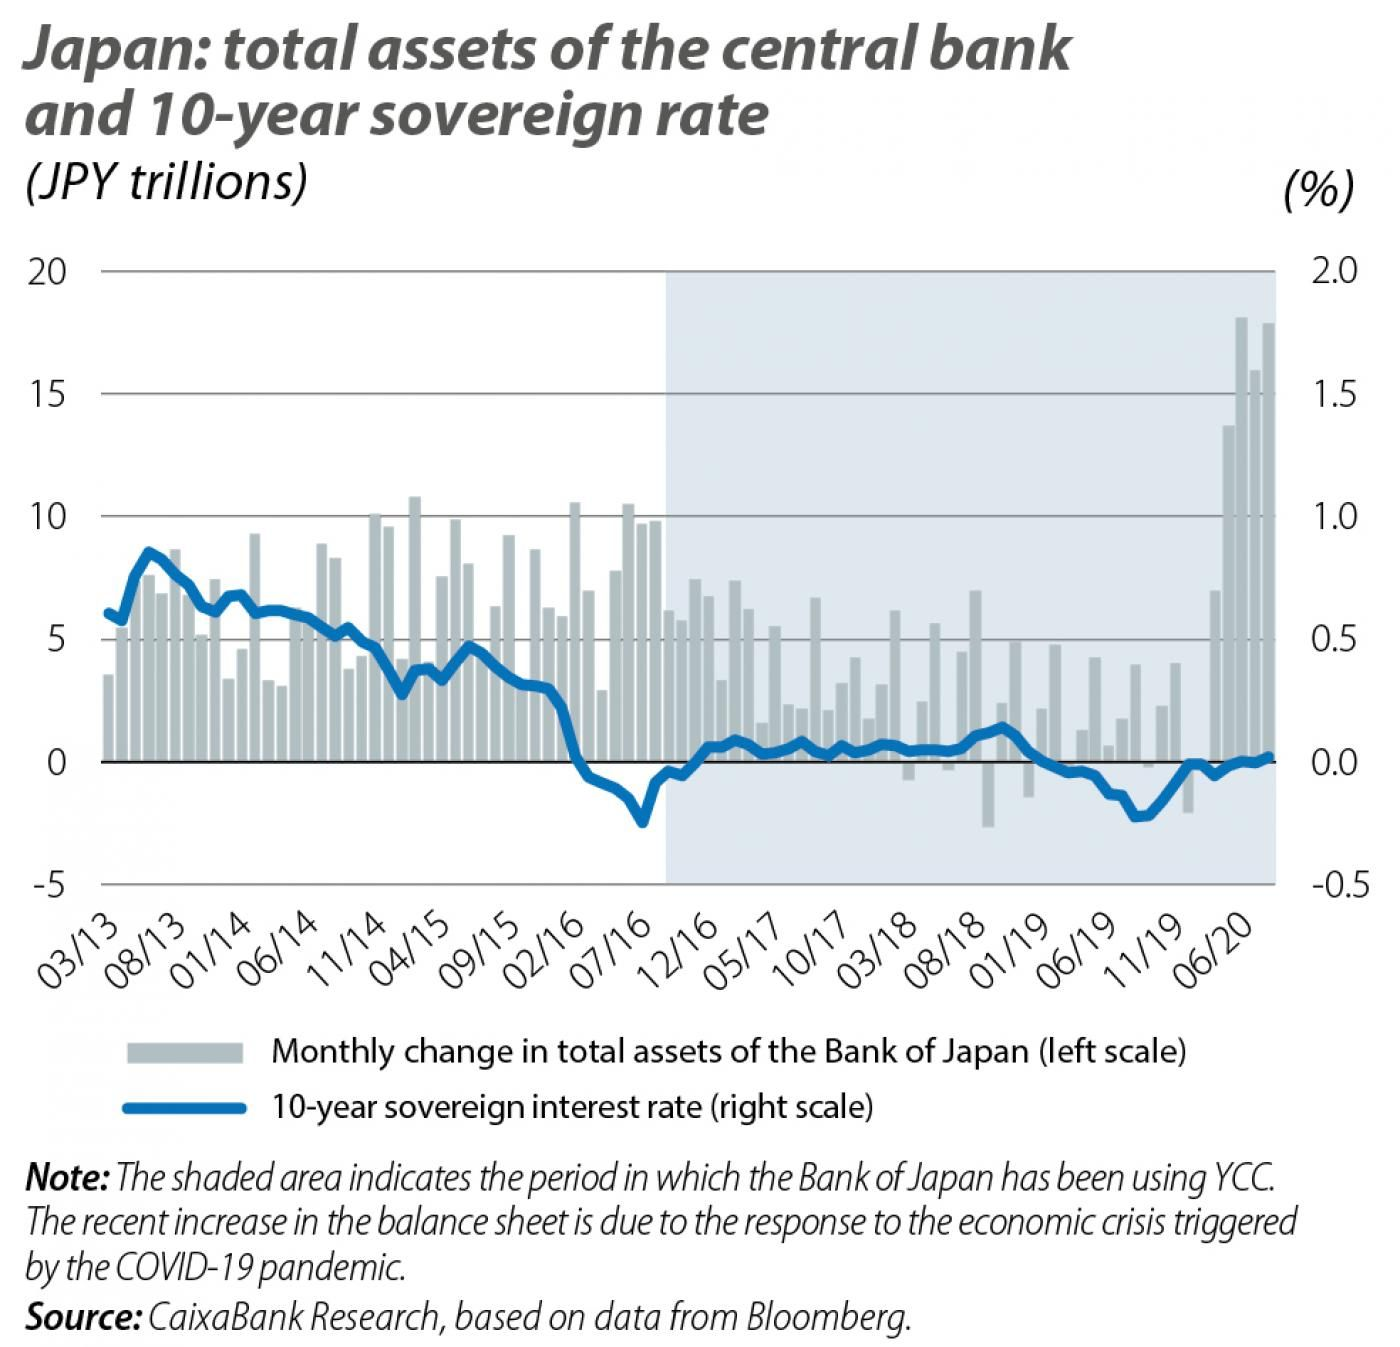 Japan: total assets of the central bank and 10-year sovereign rate